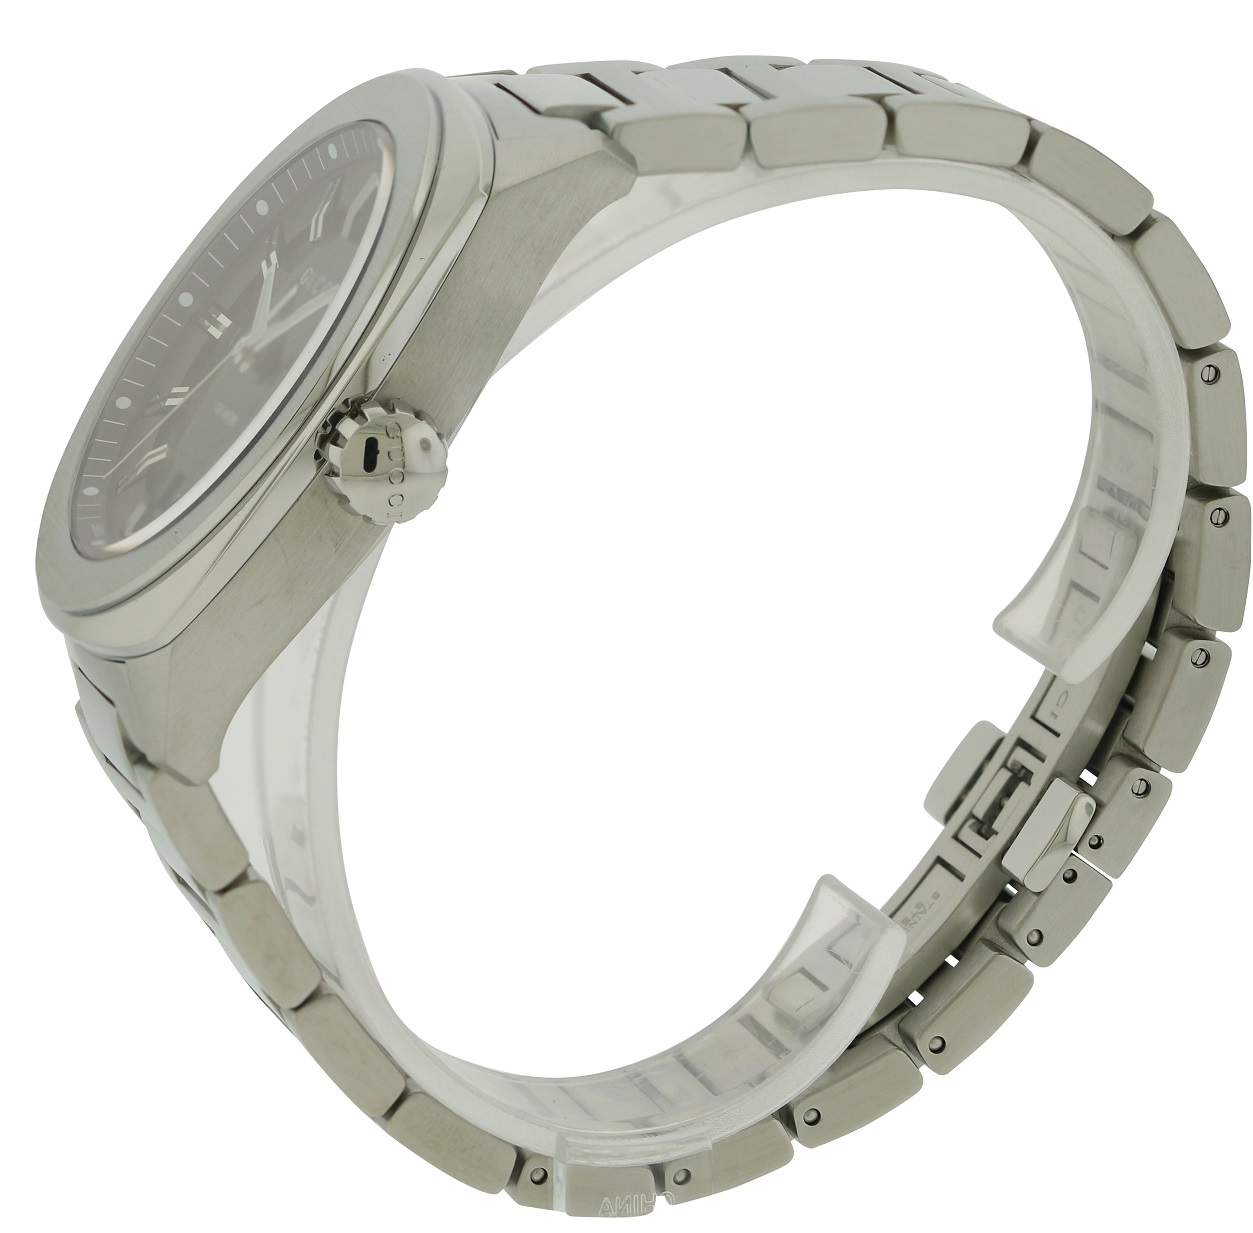 86a0e680ba5 Gucci Stainless Steel Mens Watch YA142201